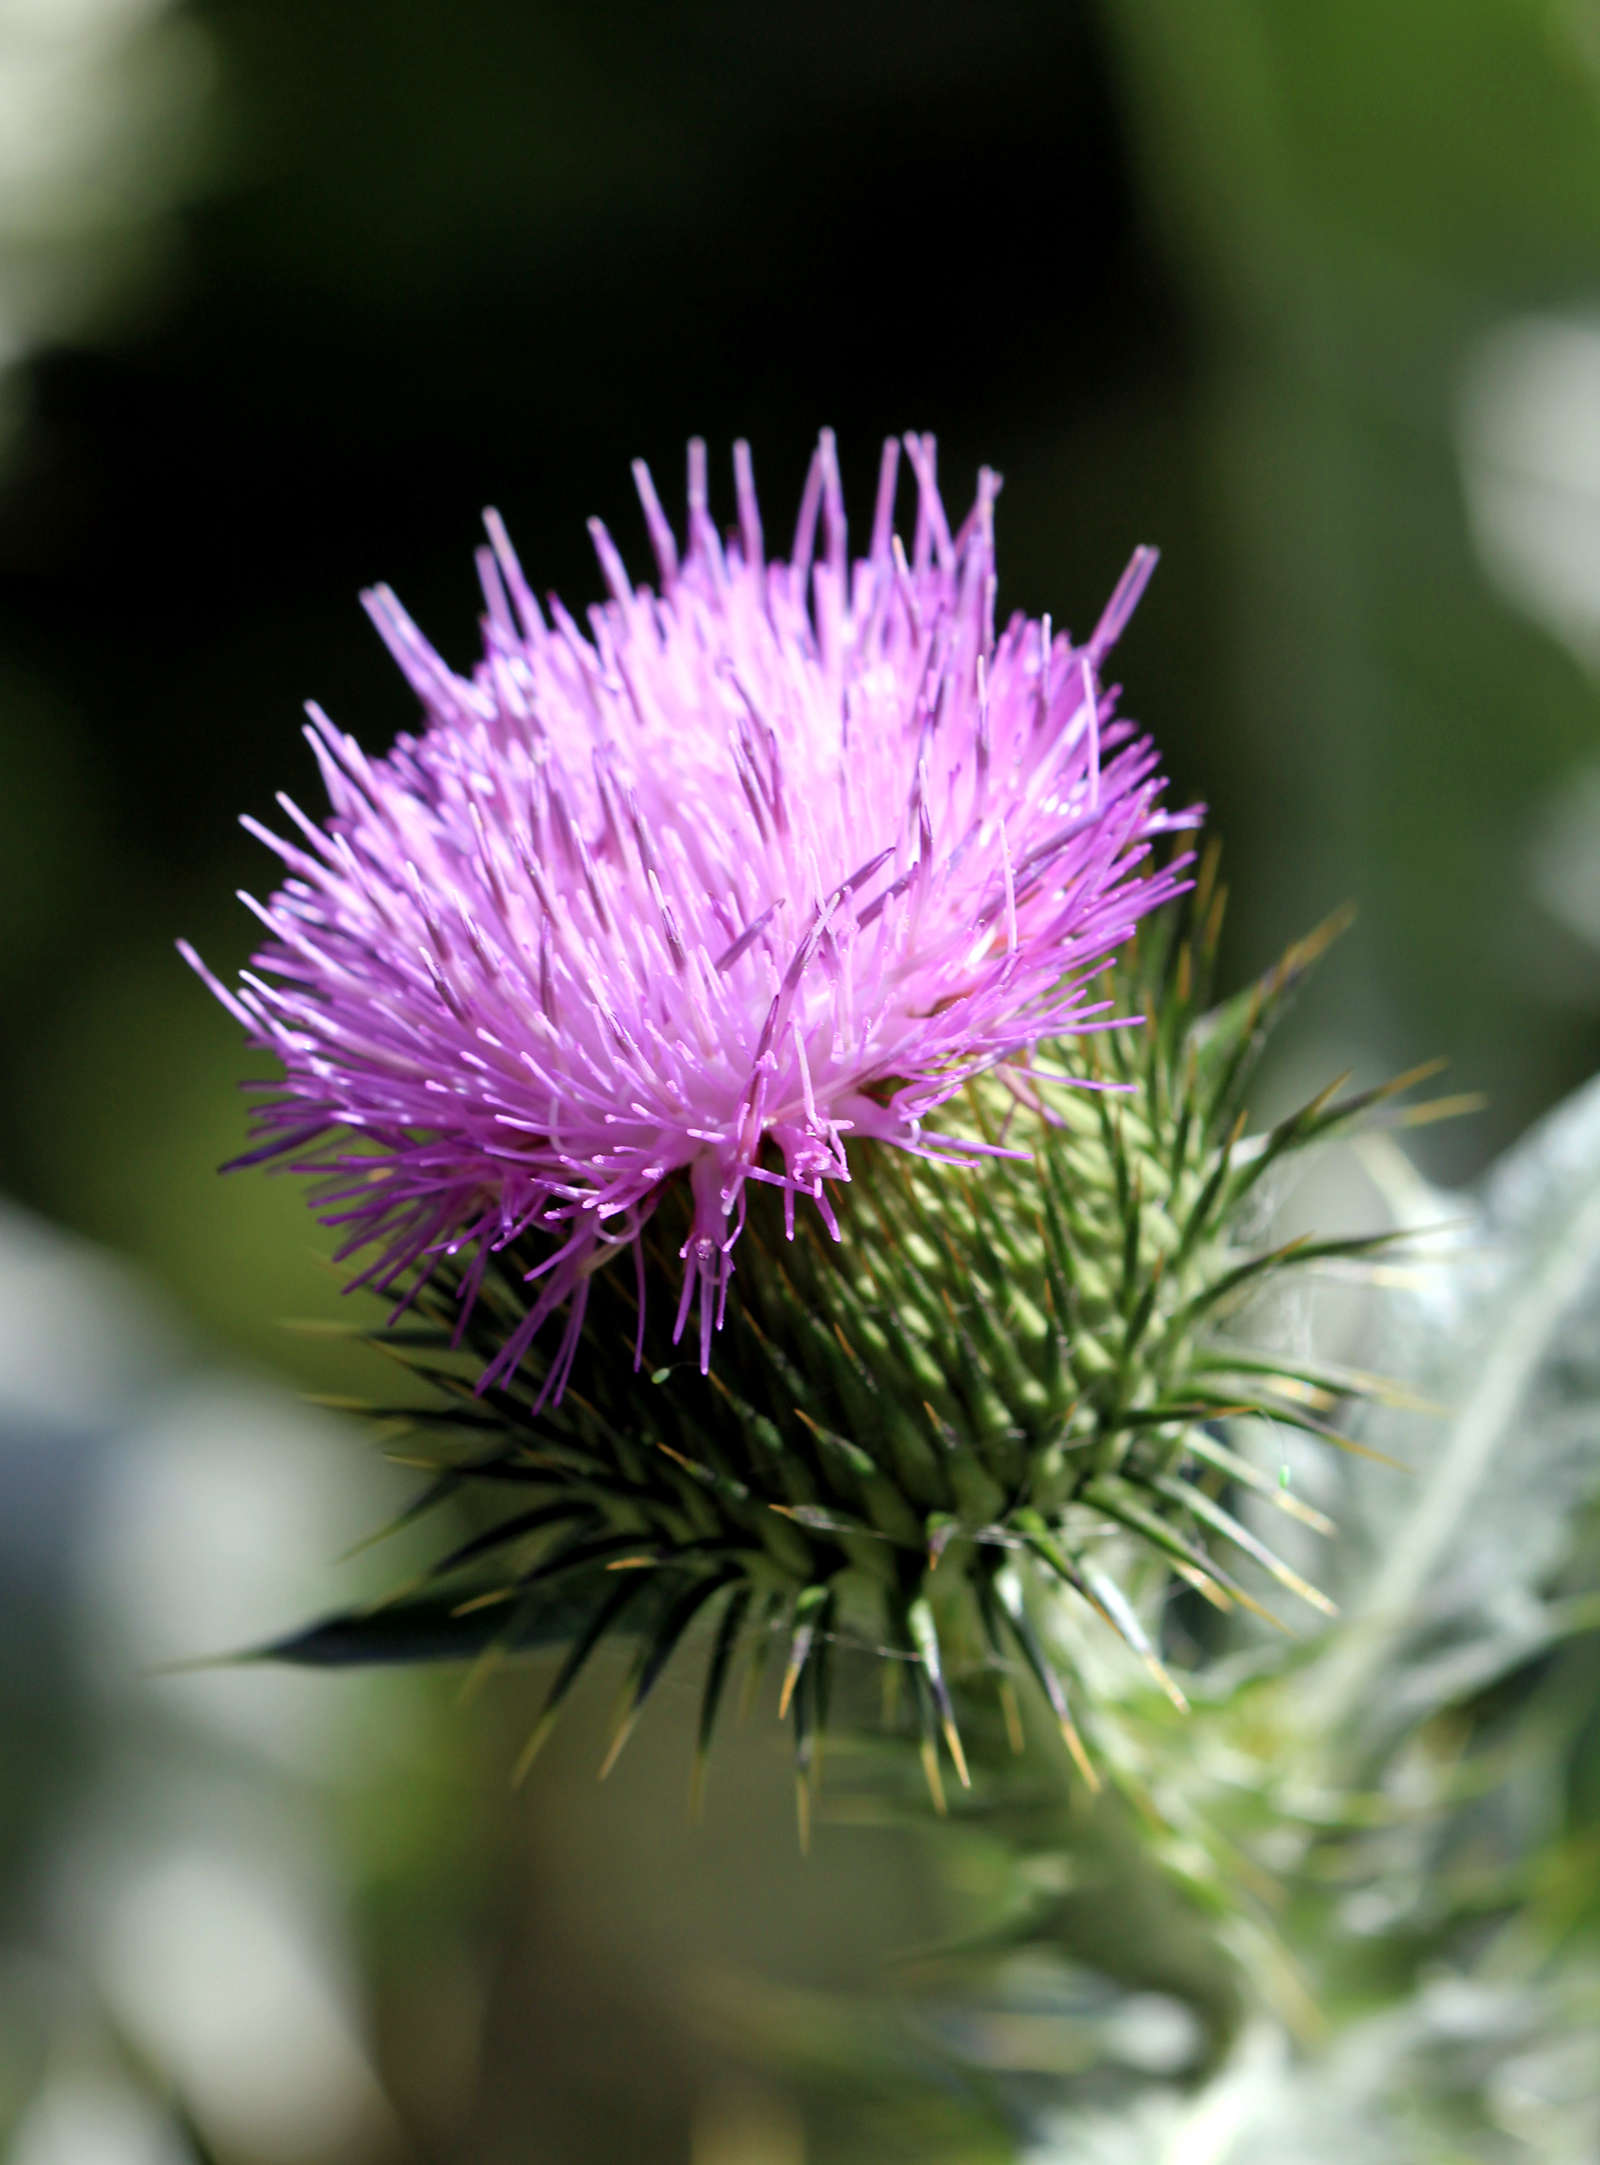 European native Scotch thistle (Onopordum acanthium) is considered an invasive nuisance in the United States. Photograph by Kareljvia Wikimedia.